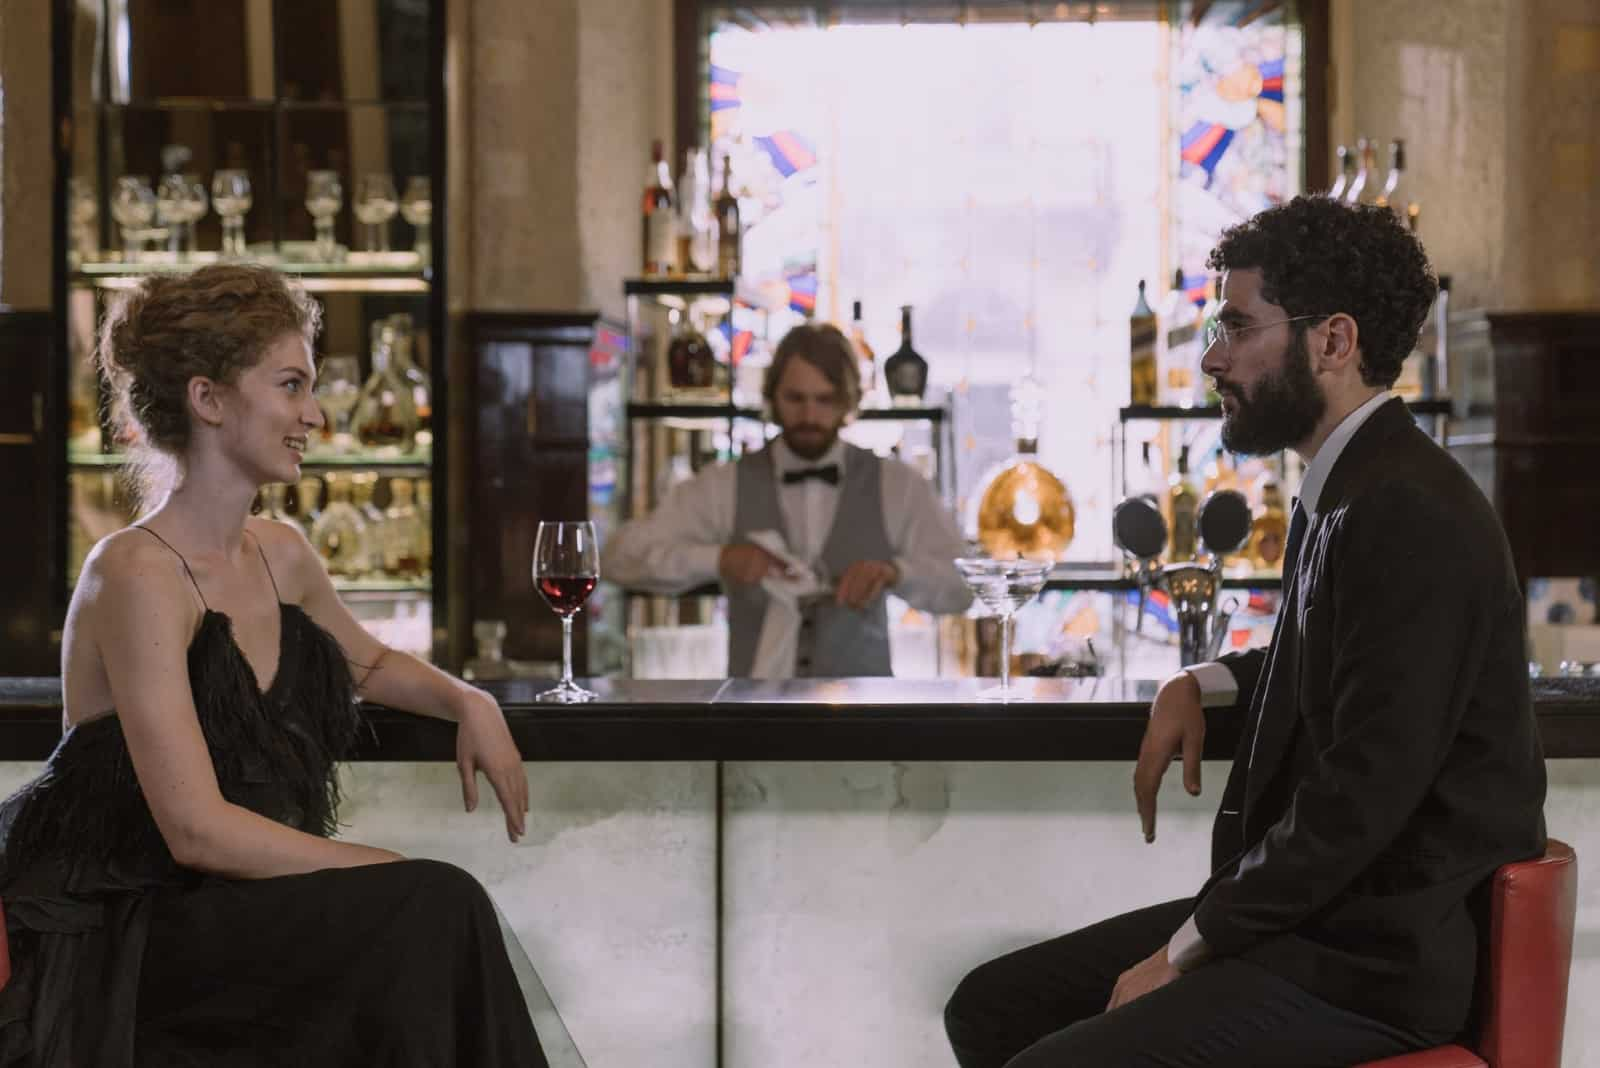 man and woman making eye contact while sitting on bar chairs in bar